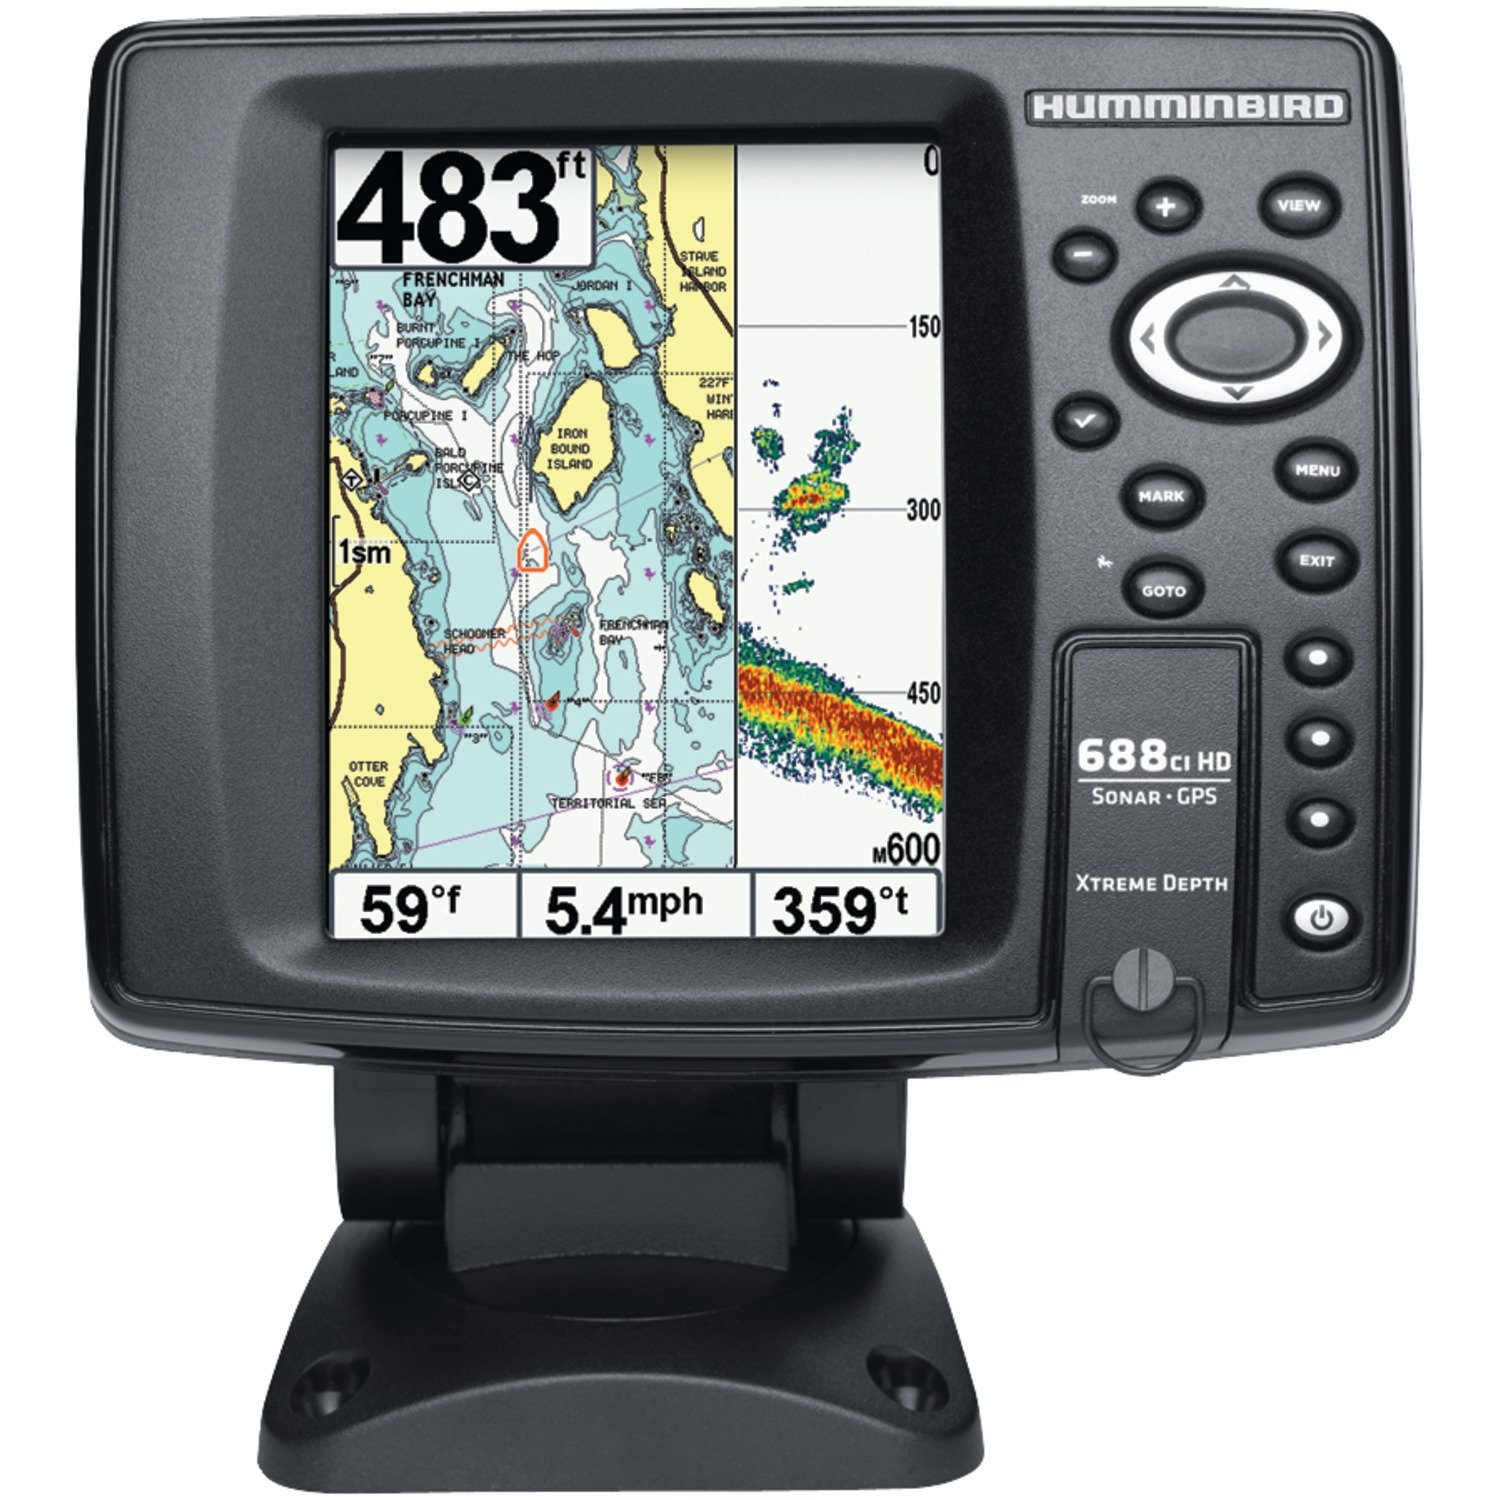 Humminbird 688ci HD XD Internal GPS/Sonar Combo Xtreme Depth Fishfinder купить эхолот humminbird piranhamax 160x